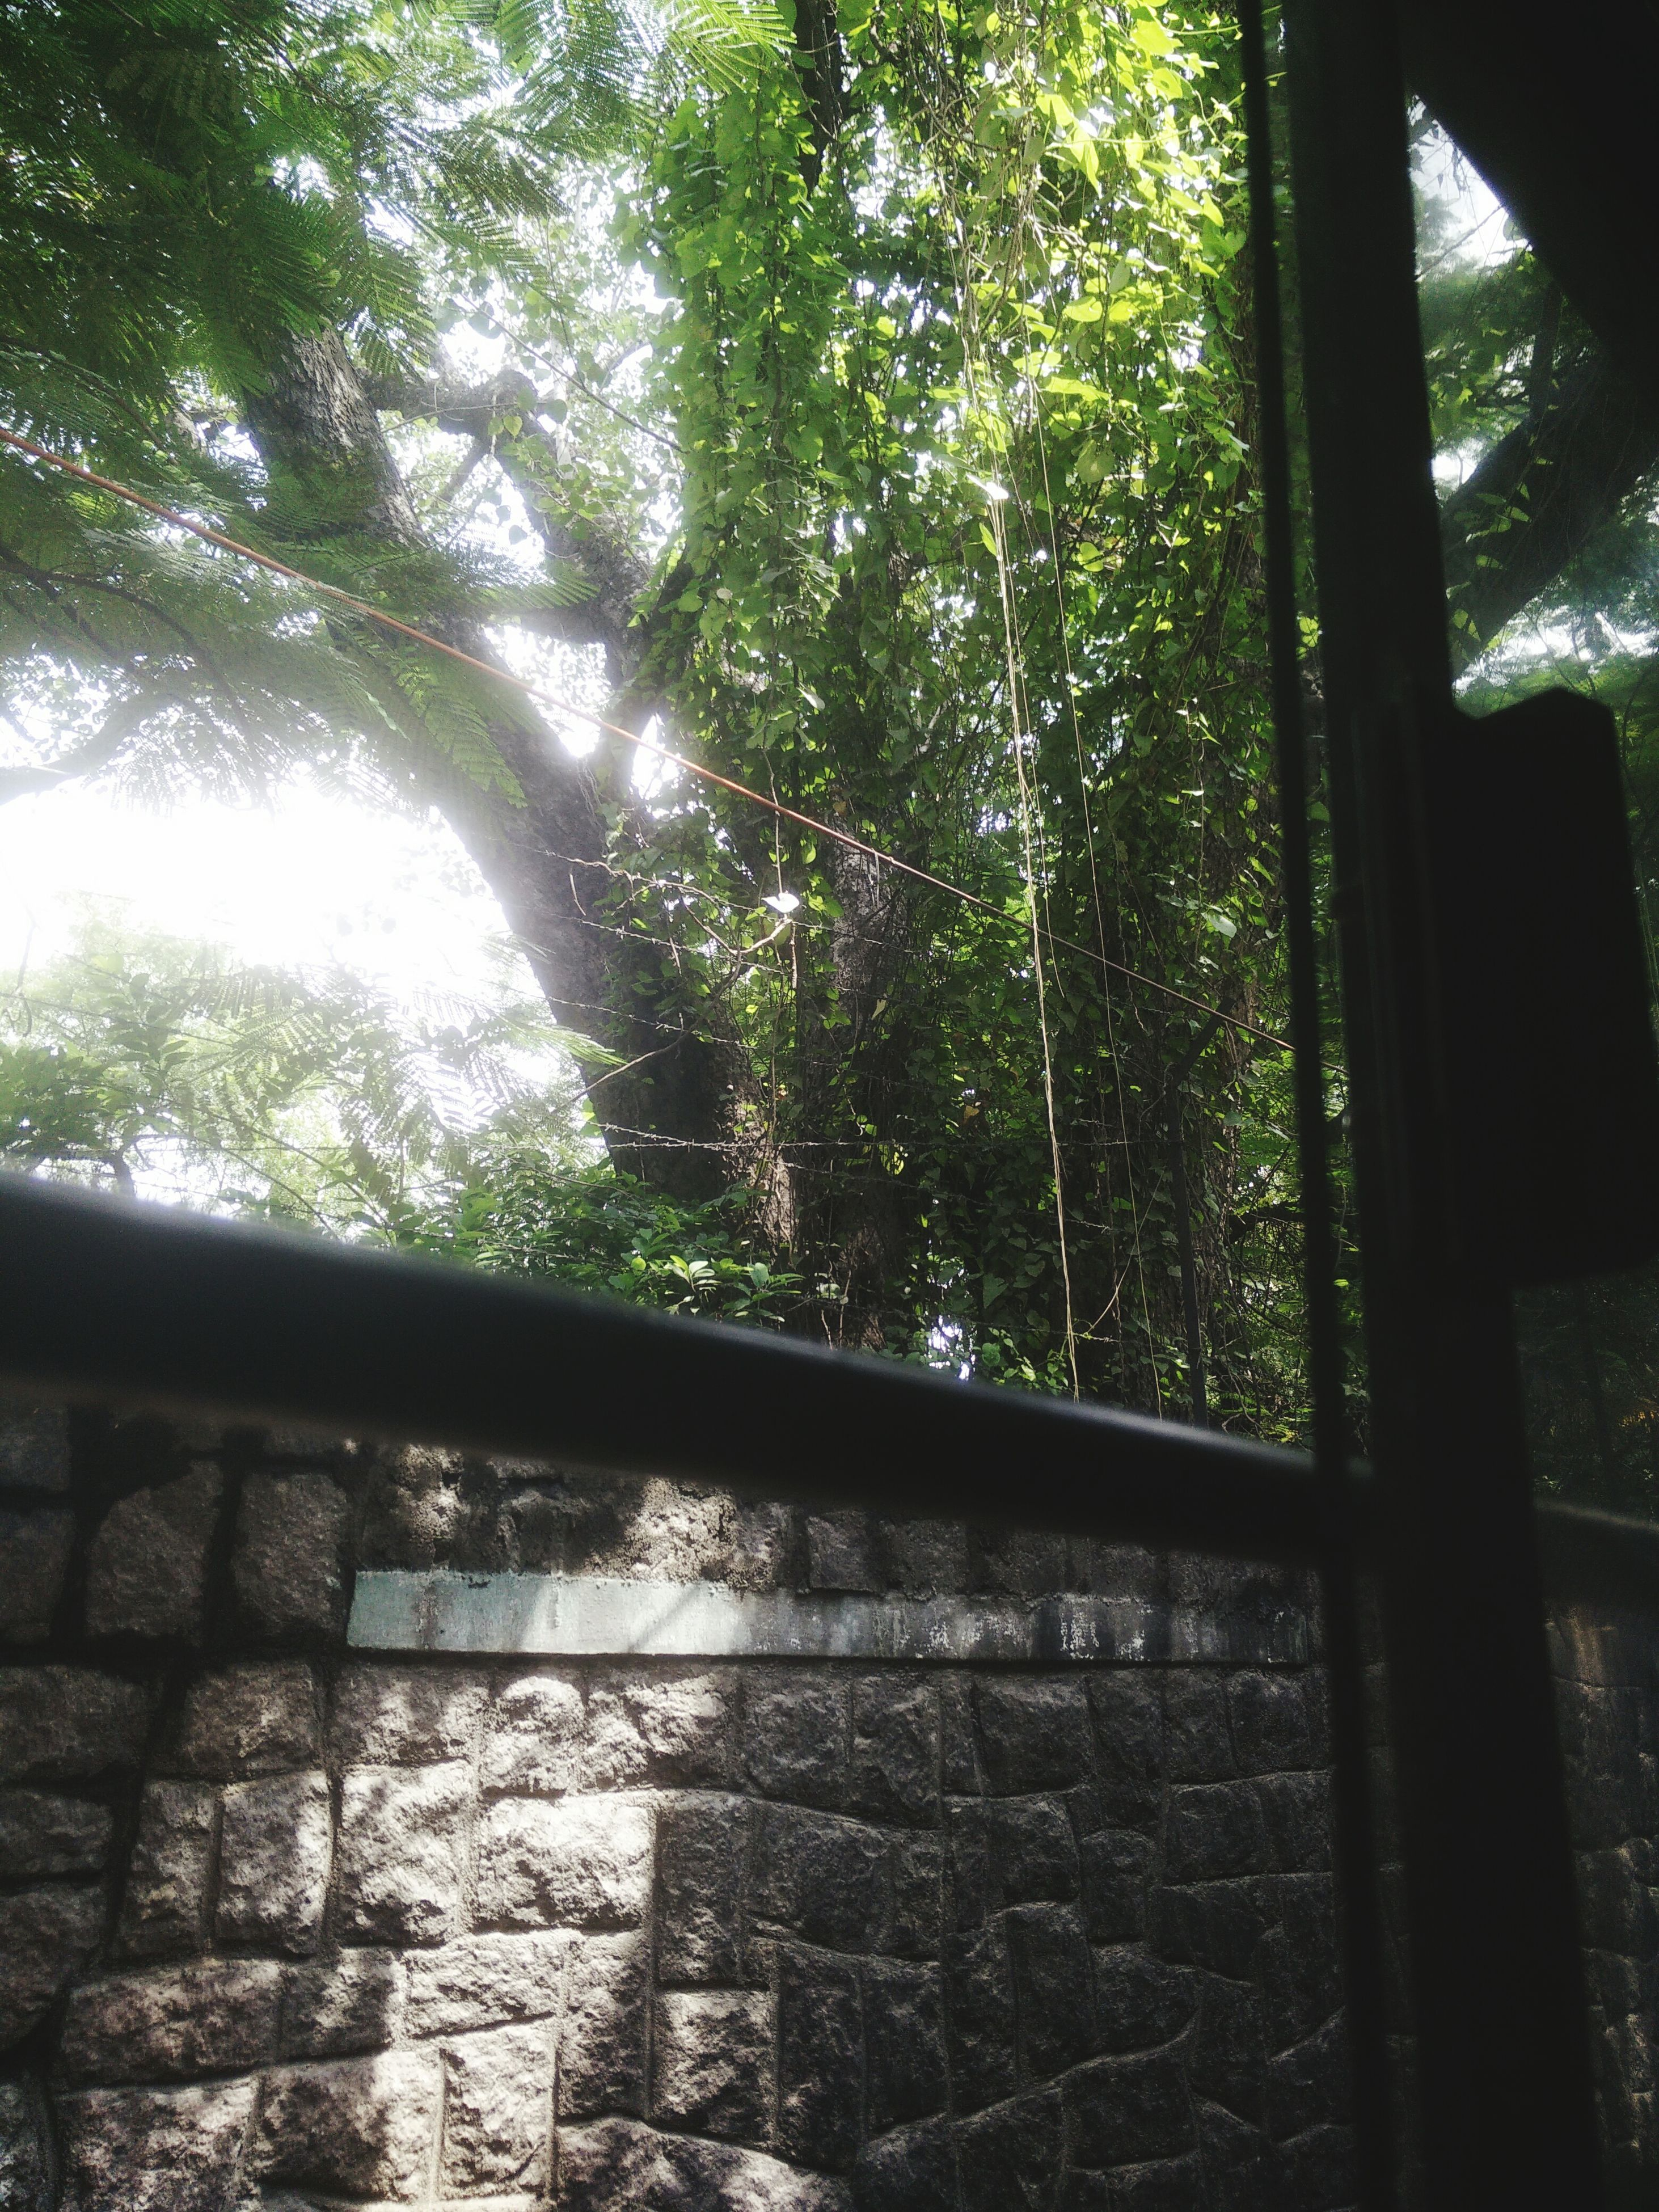 tree, window, indoors, glass - material, built structure, growth, transparent, architecture, day, low angle view, sunlight, no people, metal, branch, closed, house, pattern, tree trunk, close-up, nature